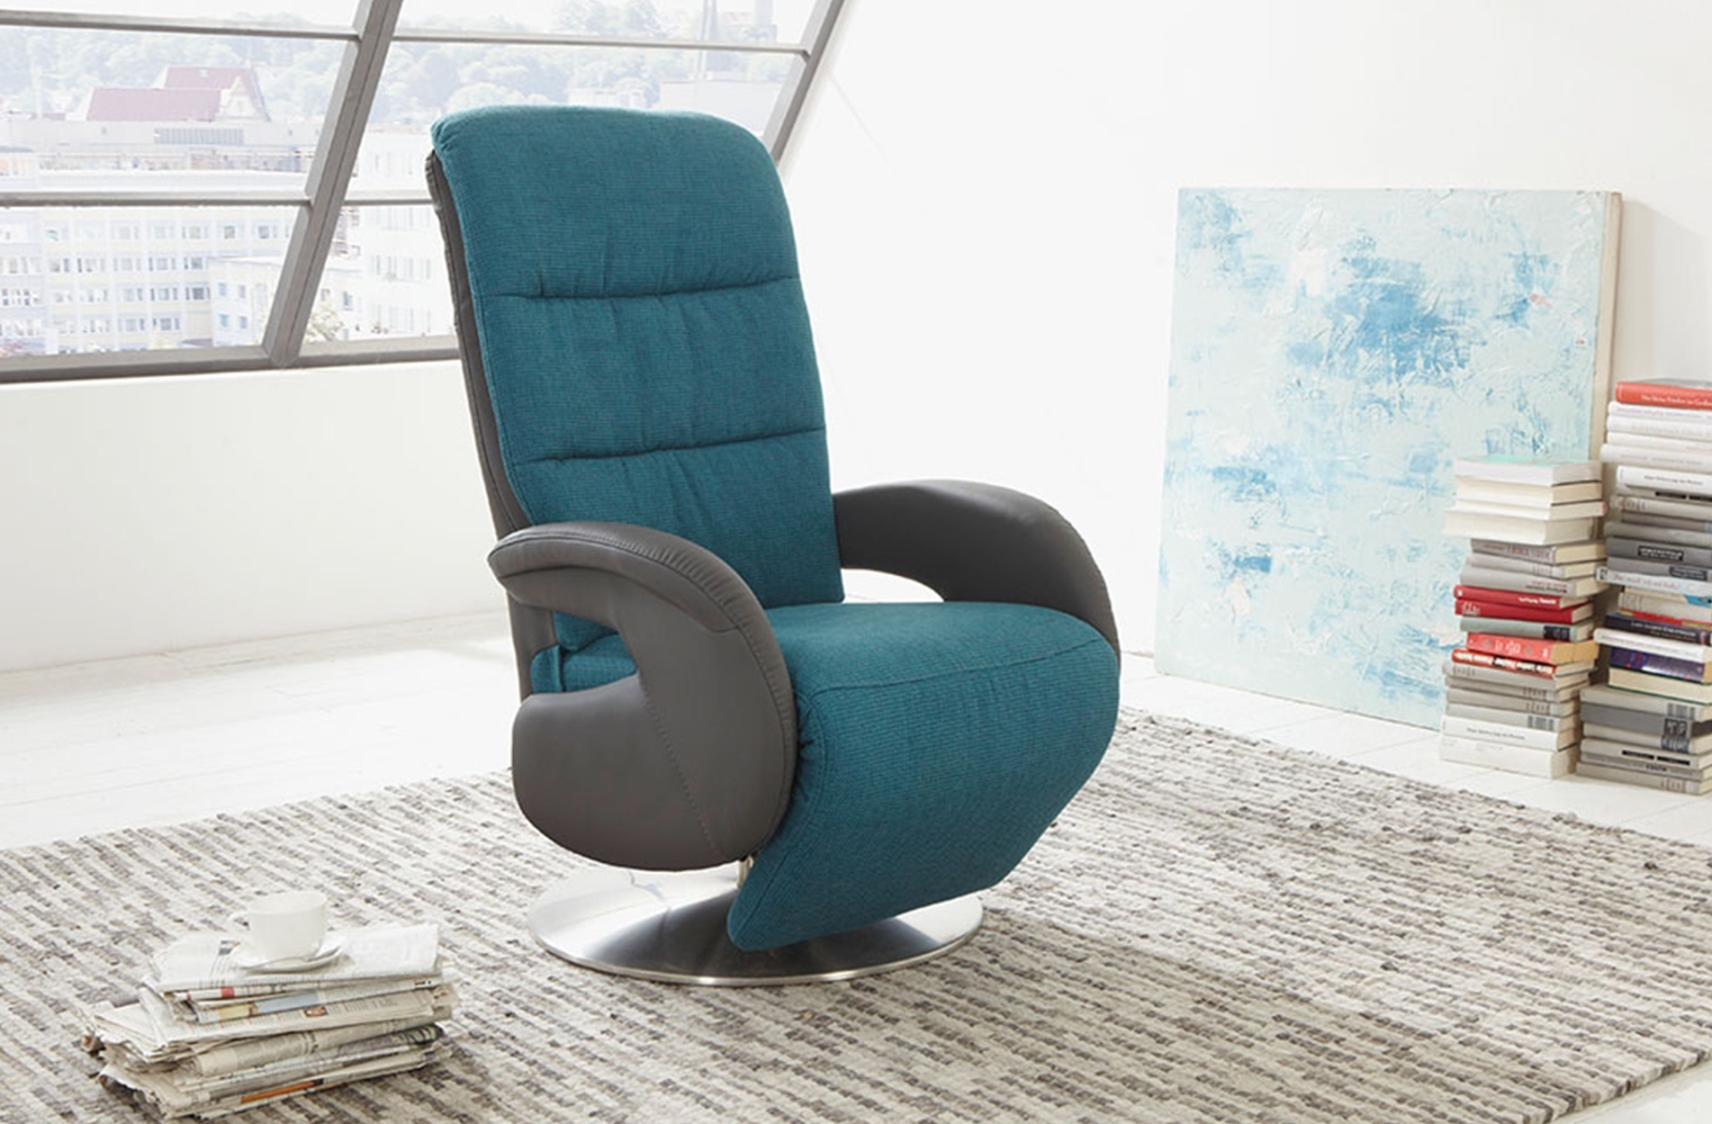 Aalen Reclining Chair Relax your own style